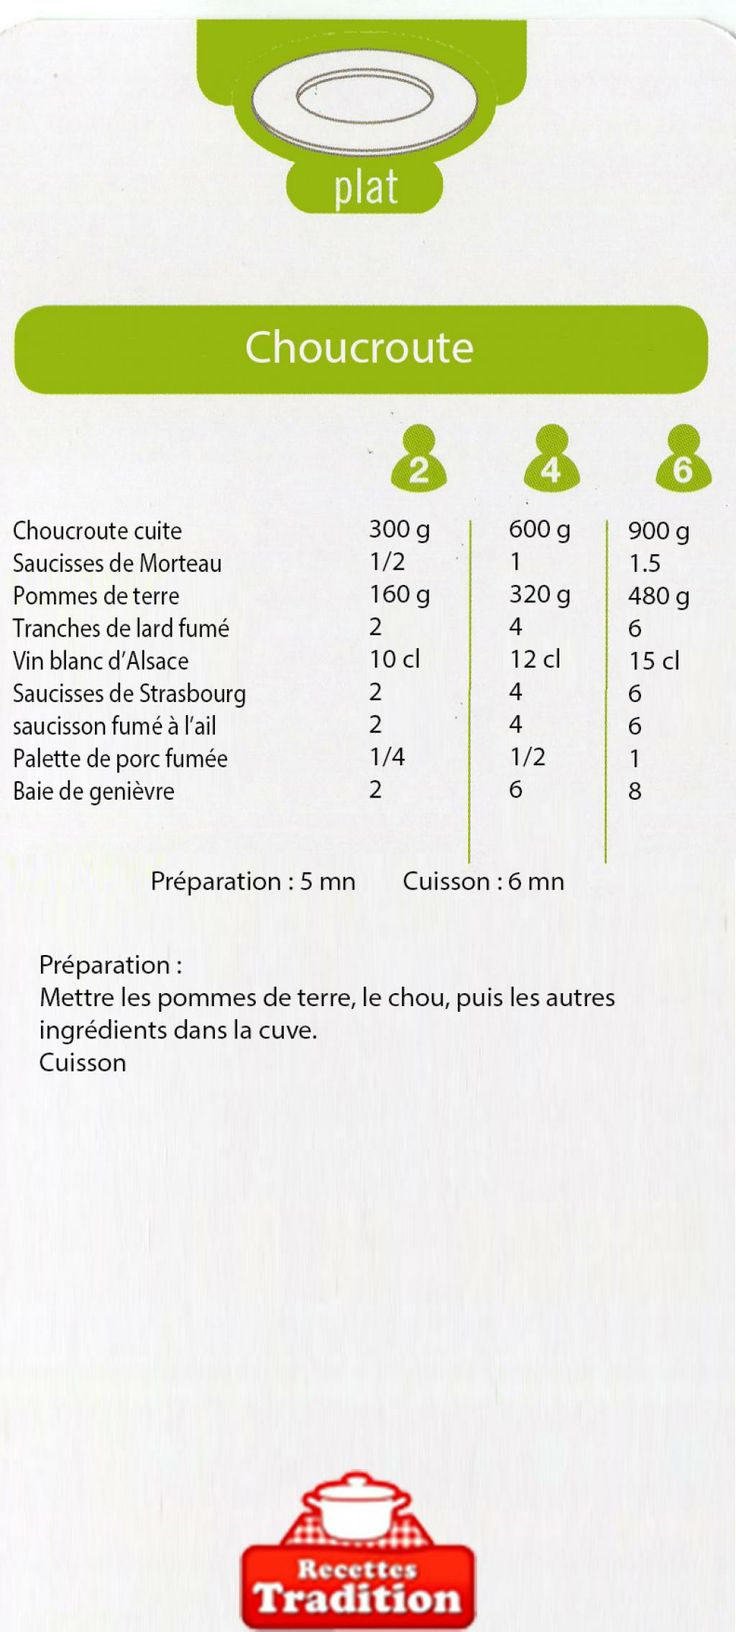 Cookeo :: Choucroute http://www.forum-cookeo.com/t1728-Choucroute.htm